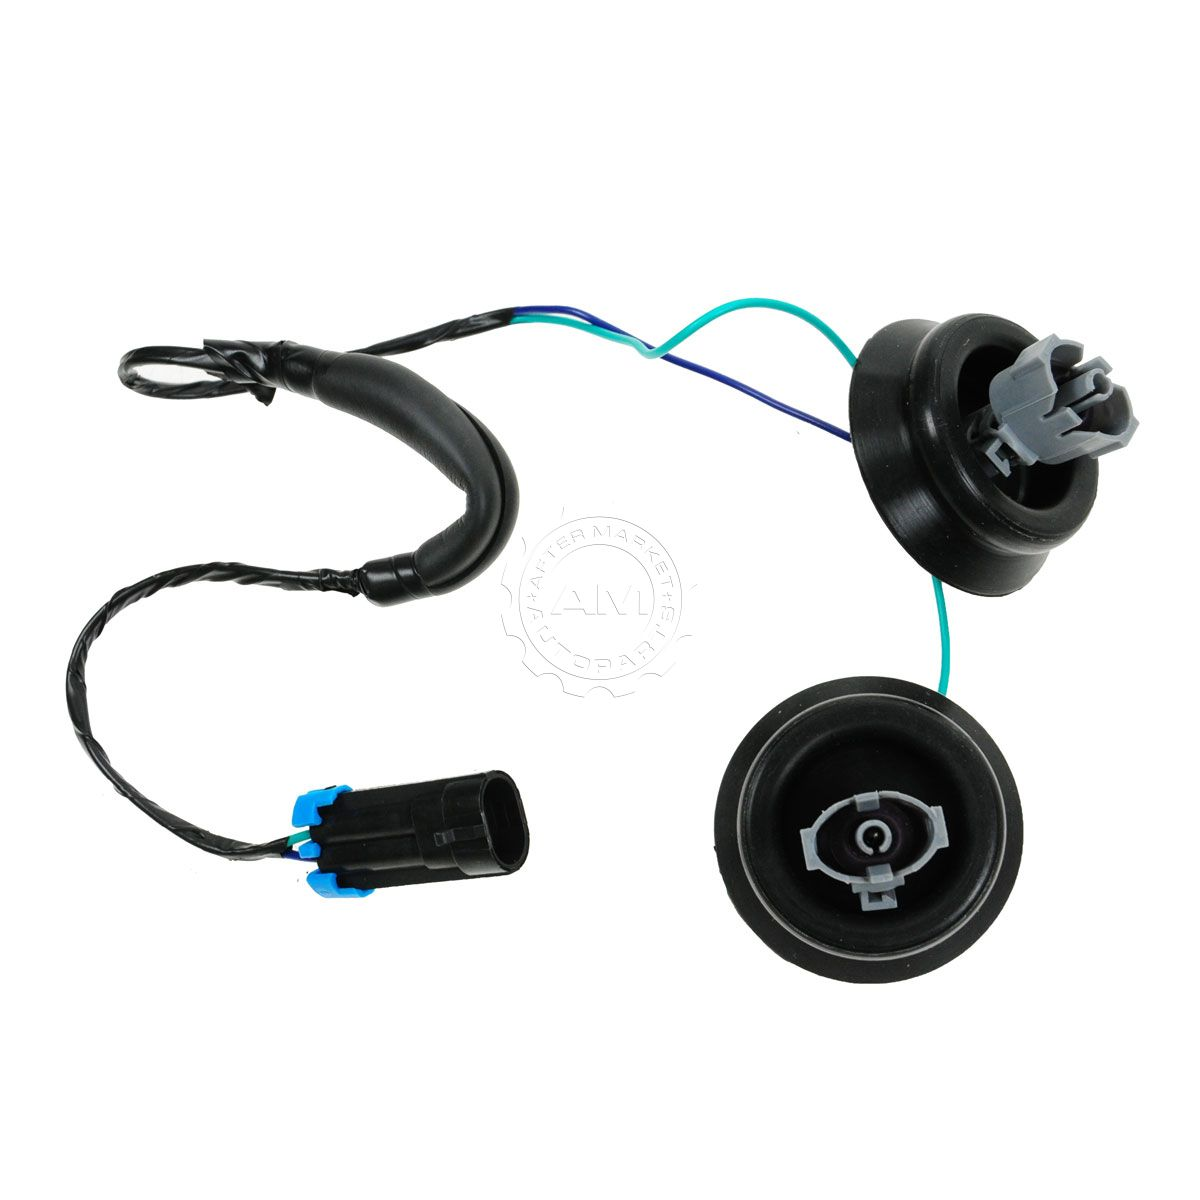 2000 Gmc Sierra Engine Knock The Car 1996 Chevy Blazer Sensor Wiring Diagram Harness With Dual Connectors Grommets For